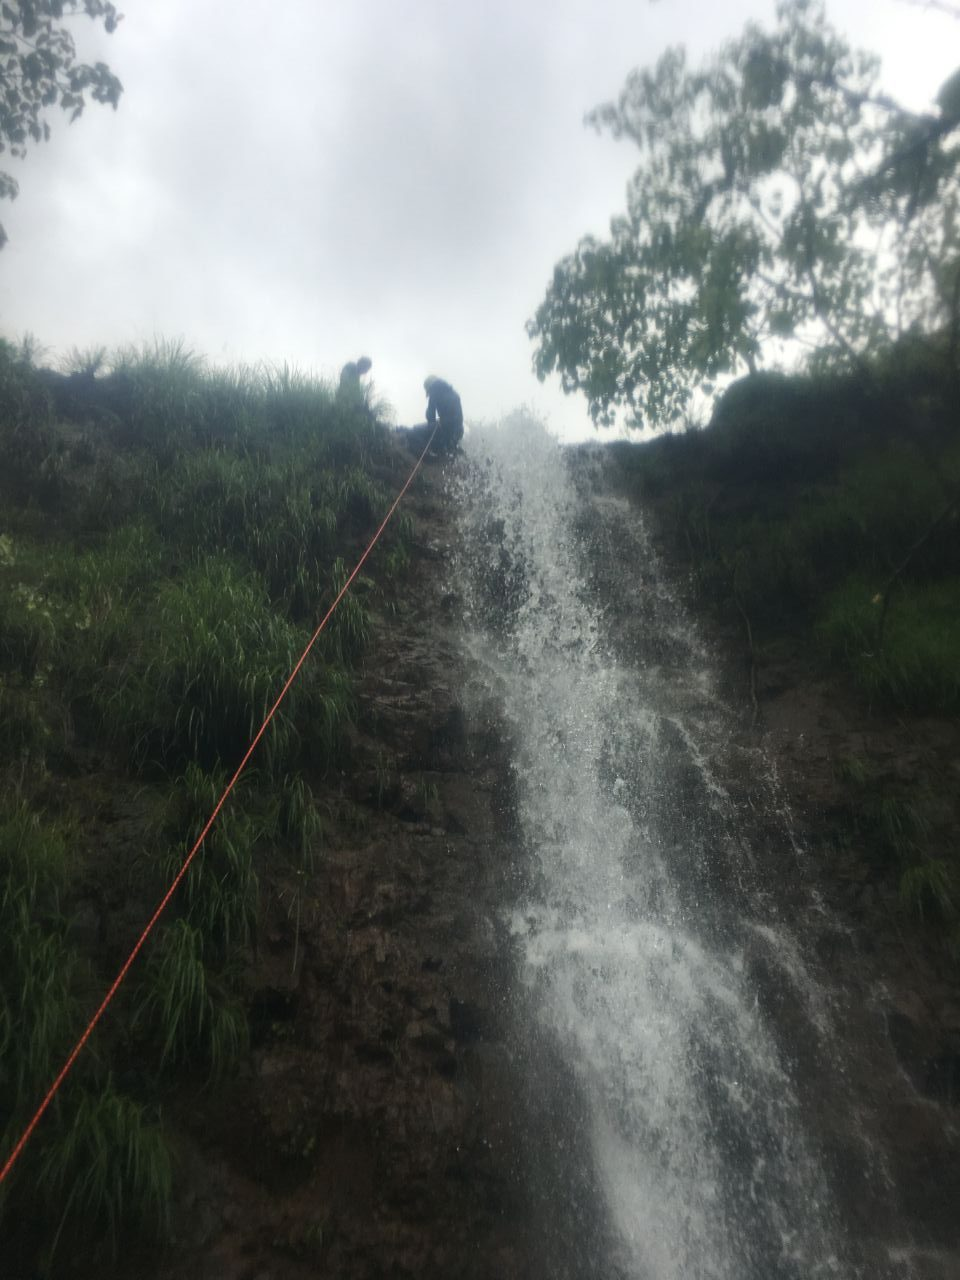 Waterfall rappelling @ Nisargshala